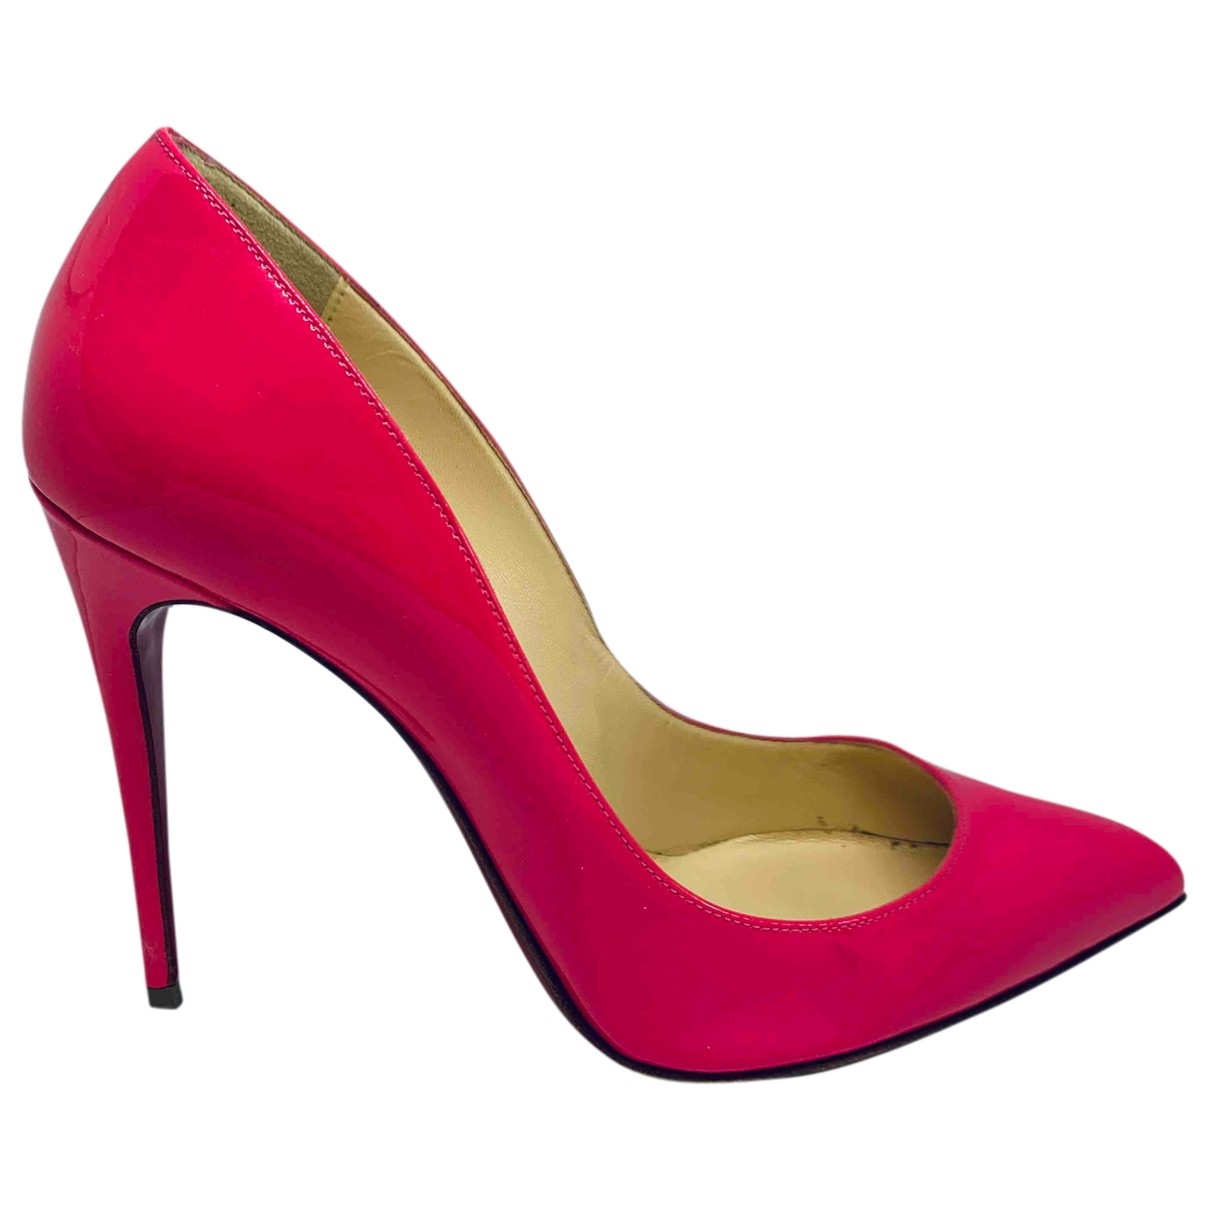 Christian Louboutin Pigalle Pink Patent leather Heels for Women 35.5 EU